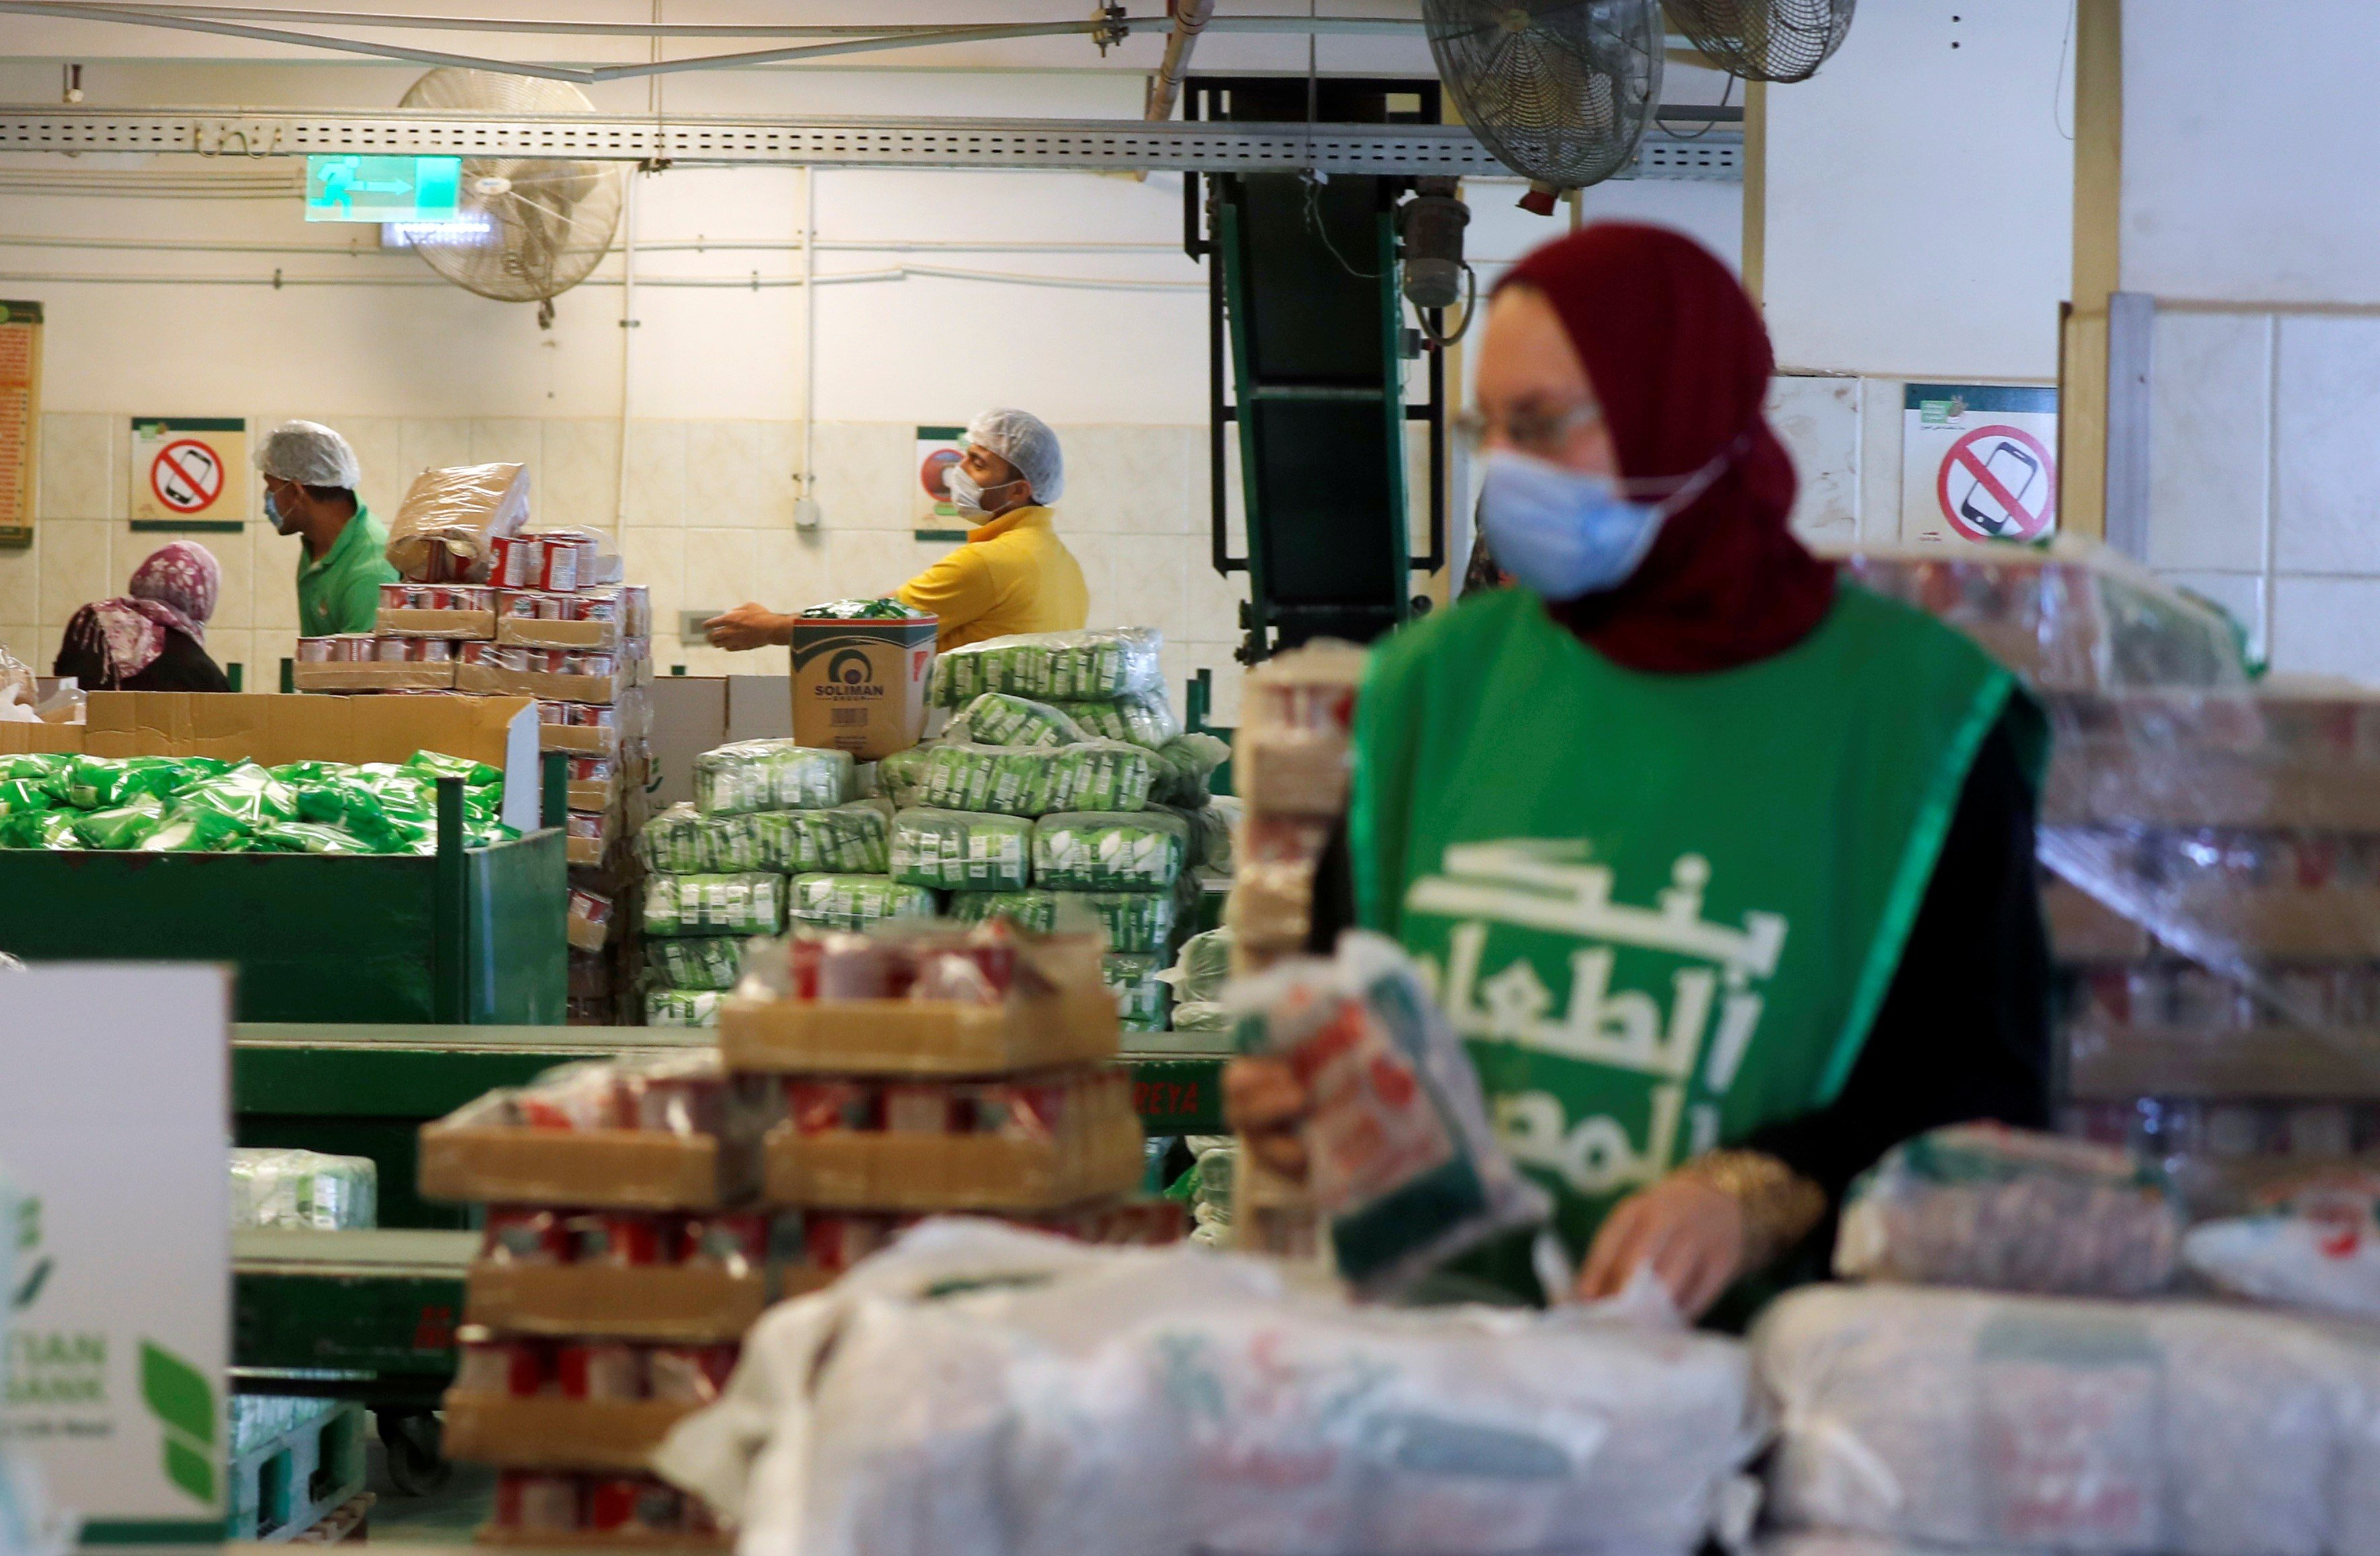 Workers of the Egyptian Food Bank fill boxes with food and aid for needy families